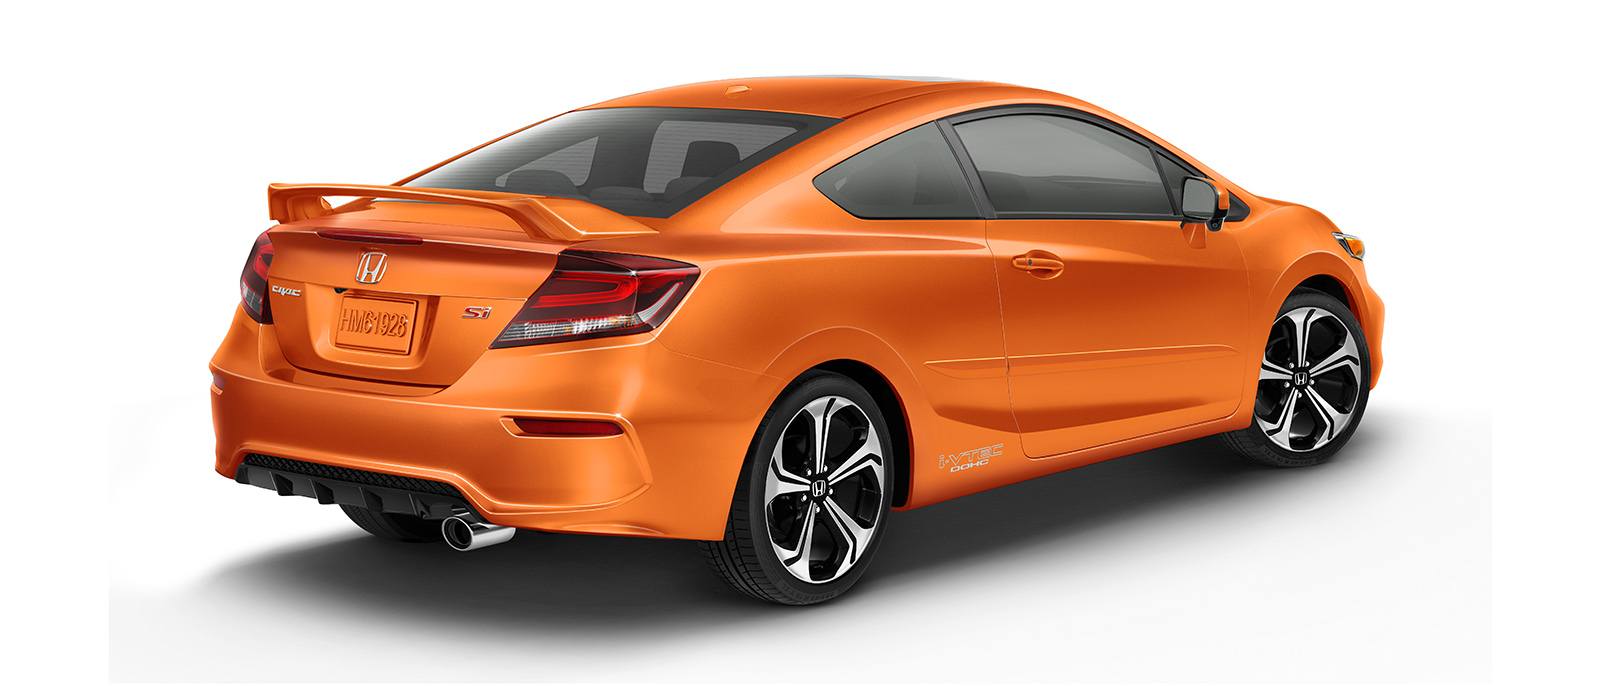 2014 honda civic si coupe denver boulder co fisher honda. Black Bedroom Furniture Sets. Home Design Ideas